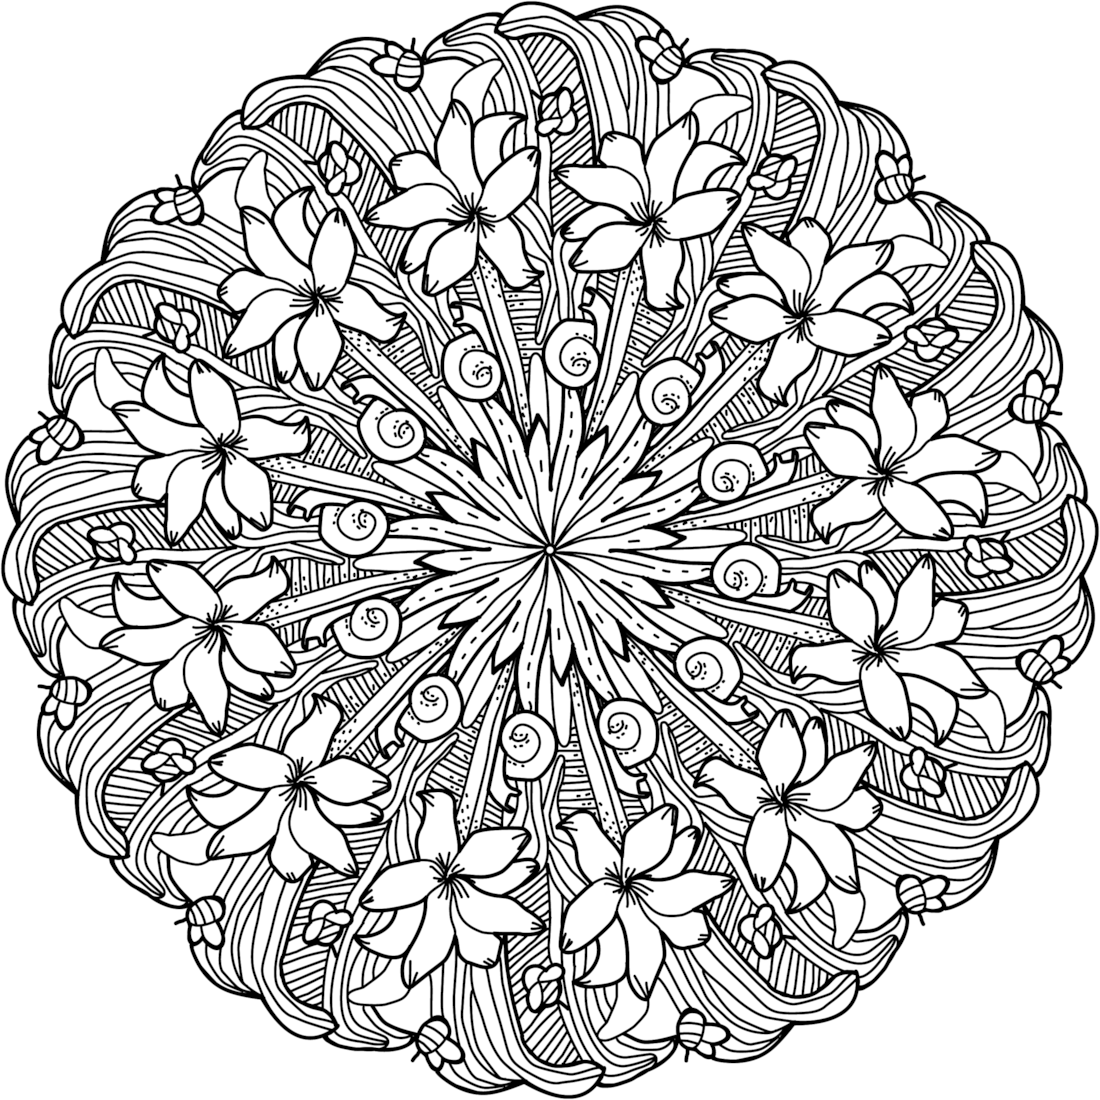 coloring designs free free printable coloring pages for adults advanced designs free coloring